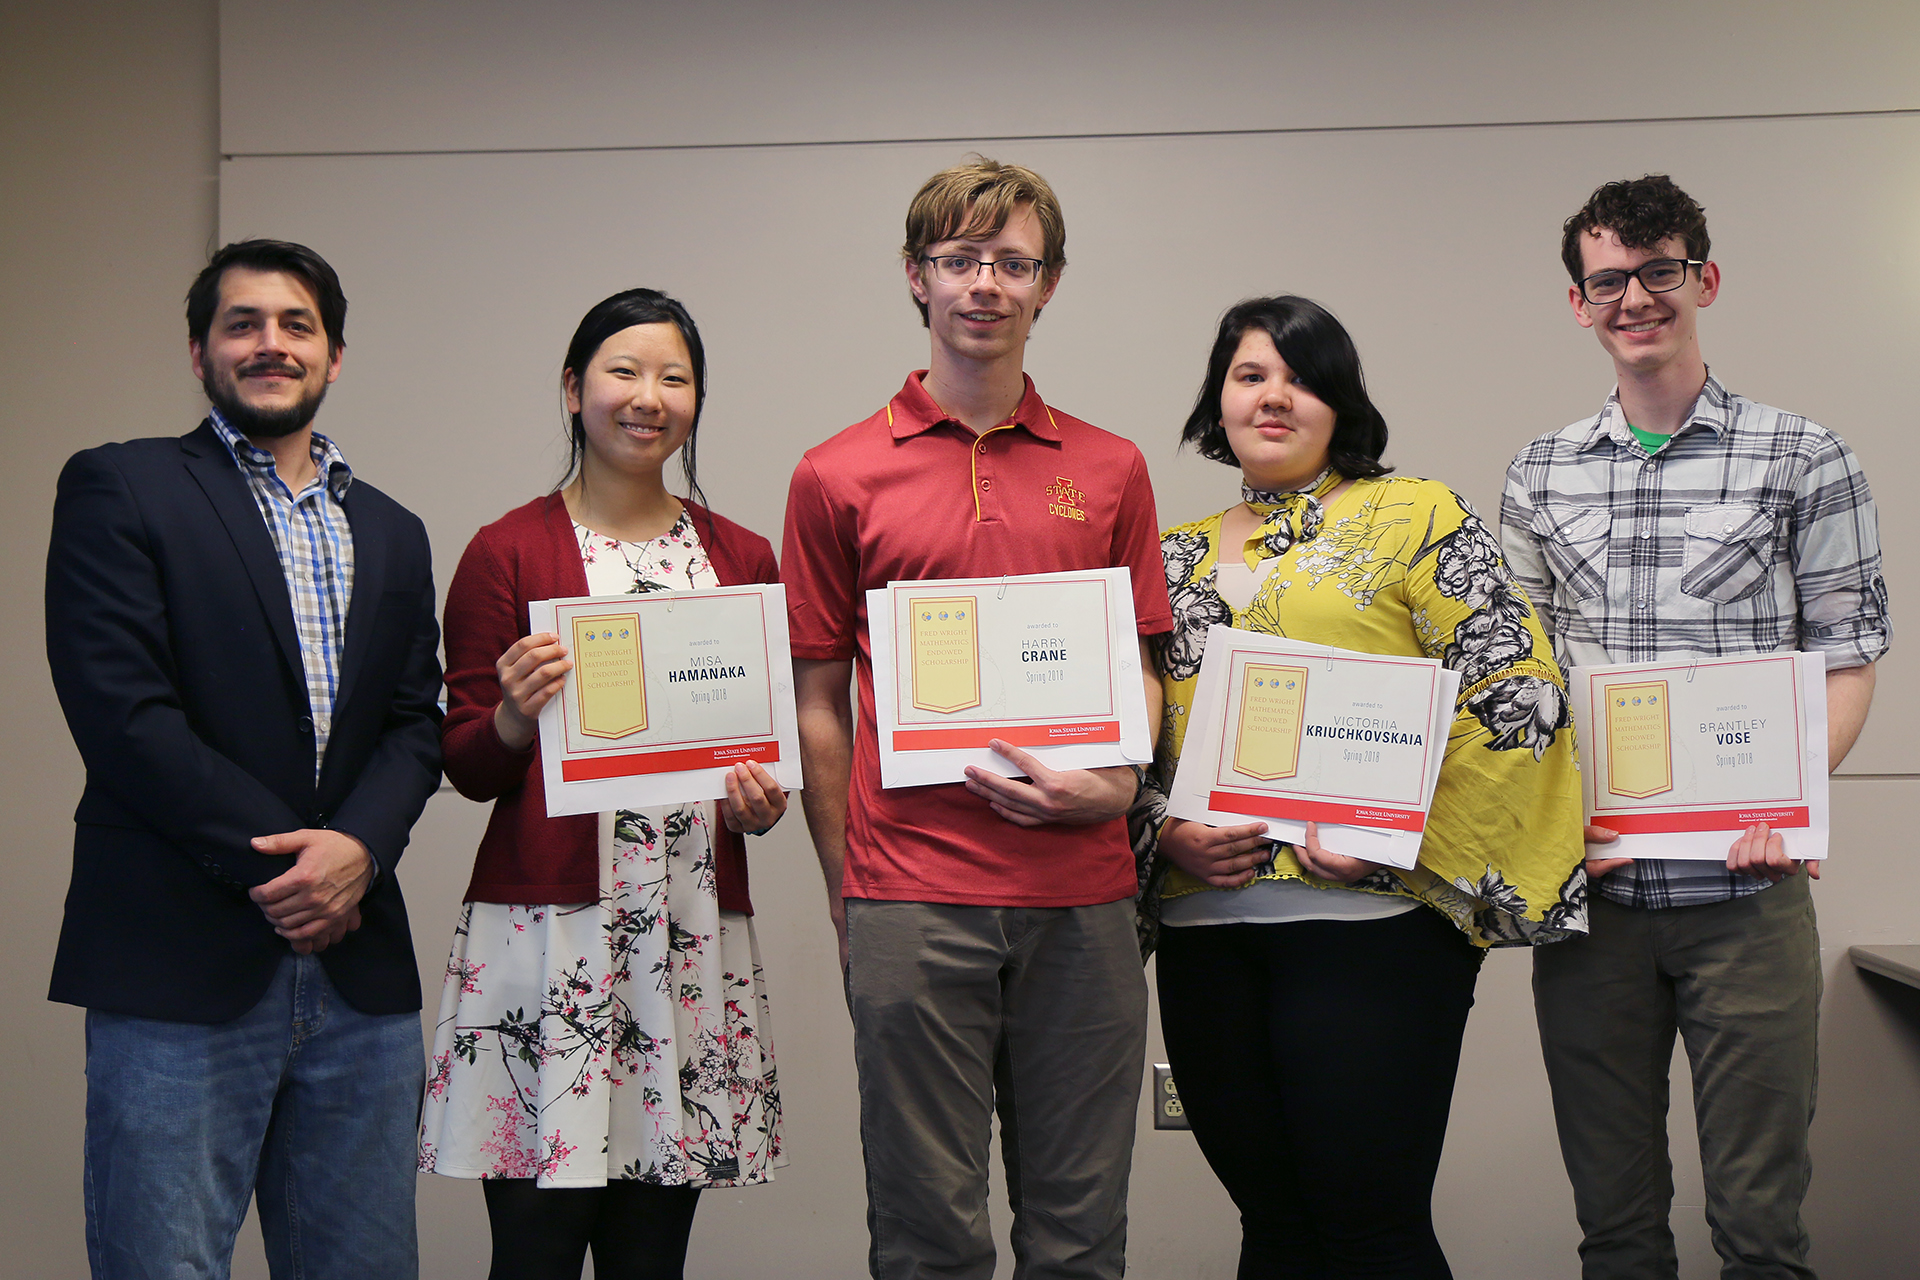 Kris Lee with the recipients of the Fred Wright Mathematics Endowed Scholarship (from left) Misa Hamanaka, Harry Crane, Victoriia Kriuchkovskaia, Brantley Vose. Not pictured: Samson Baker and Bailey Wilson.